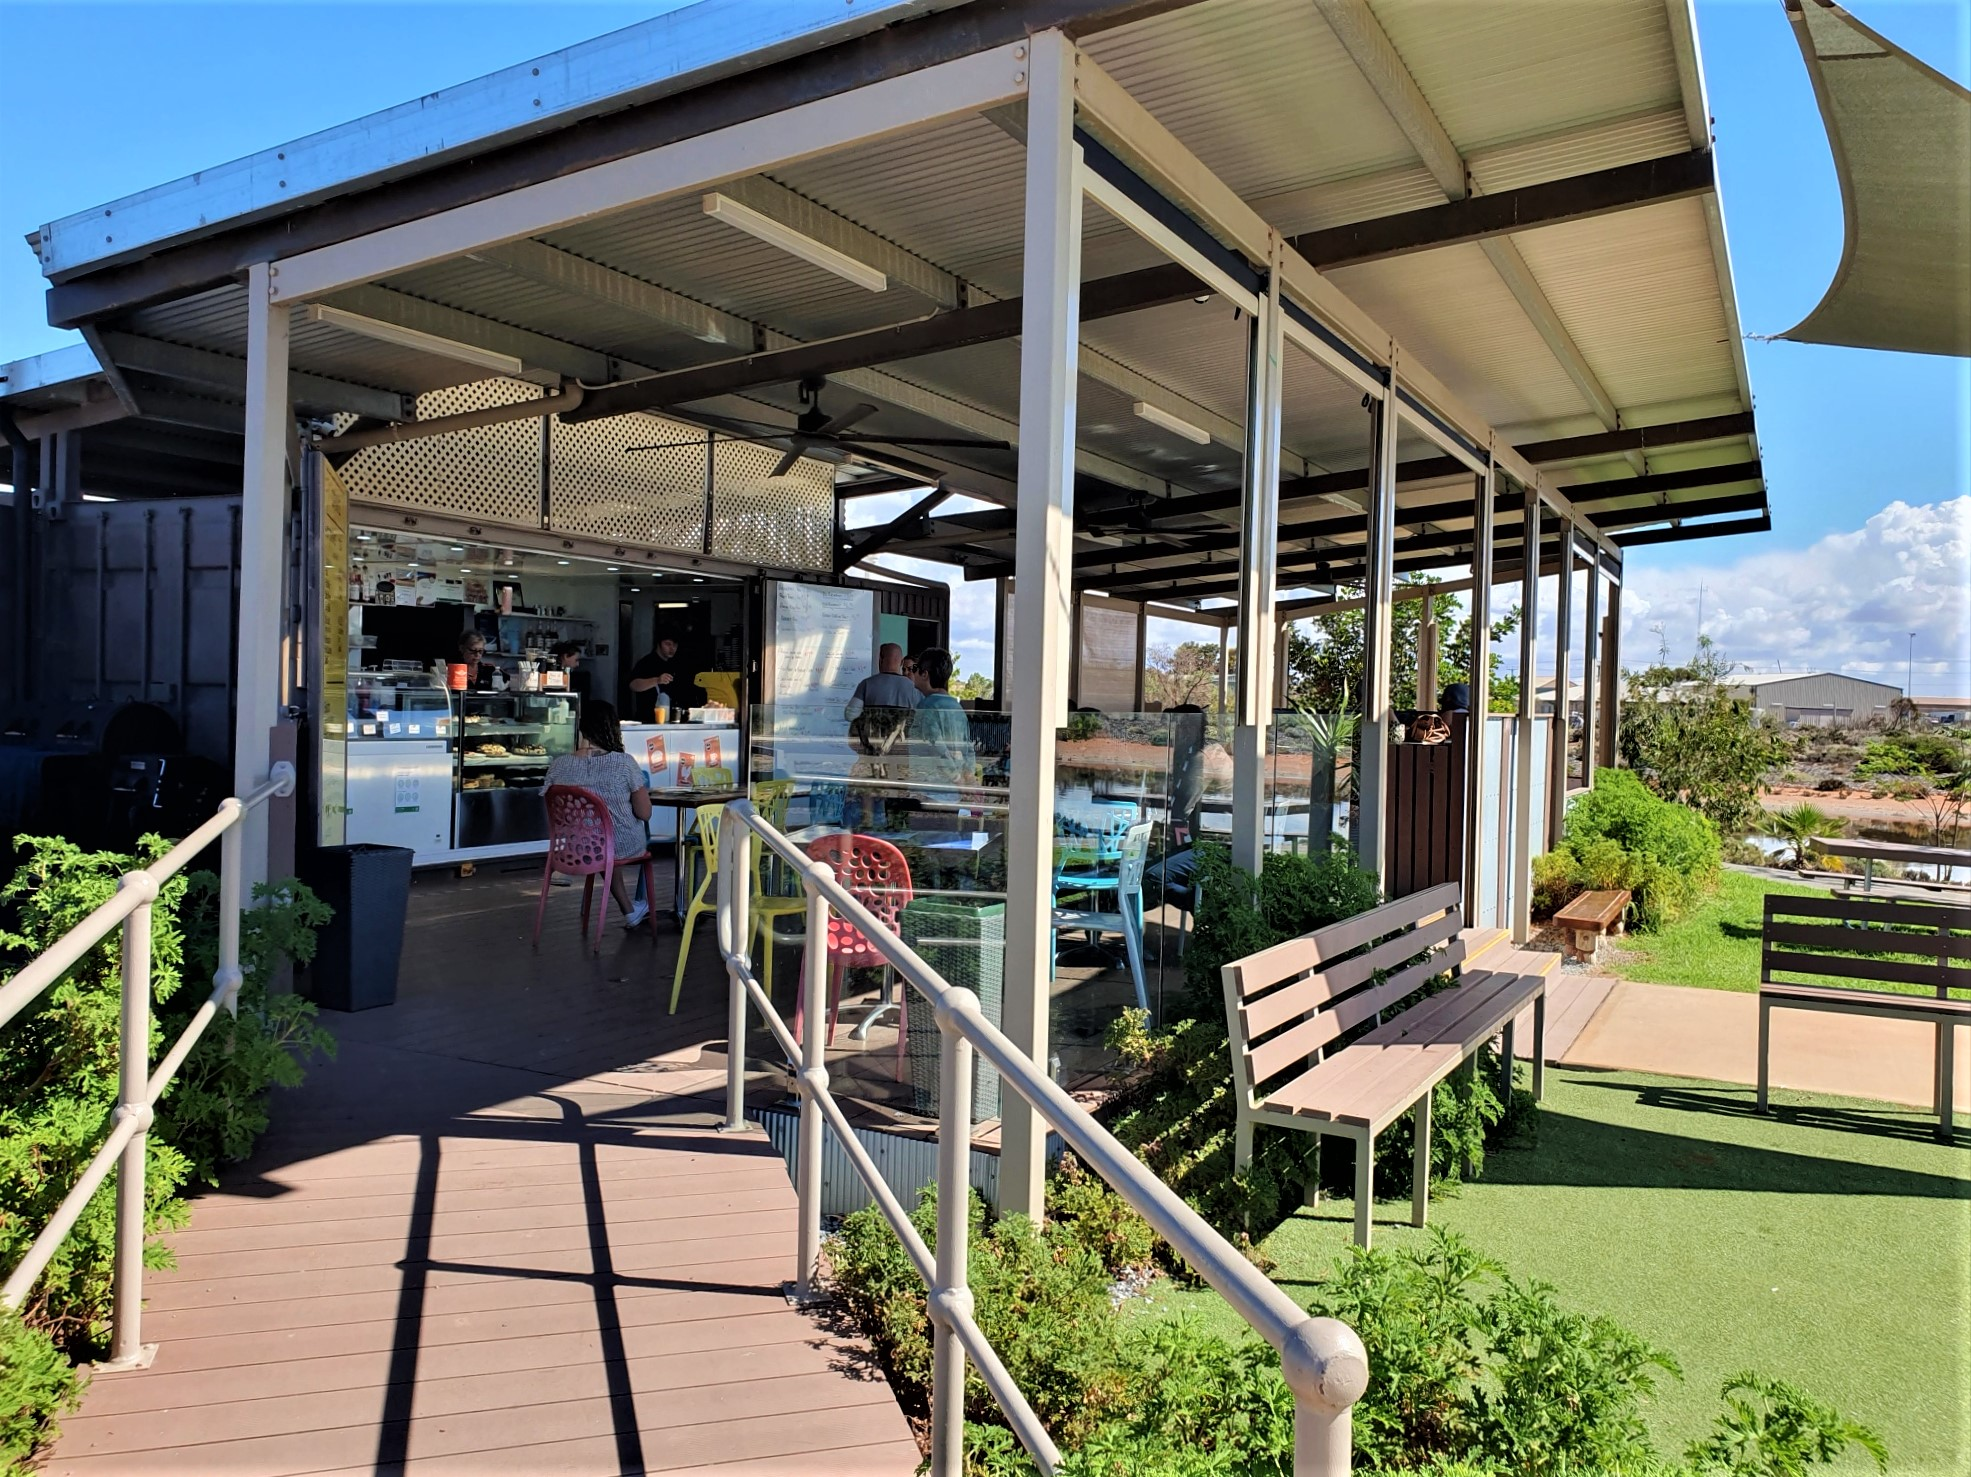 160 BROADBENT TERRACE - THE WETLANDS WHYALLA